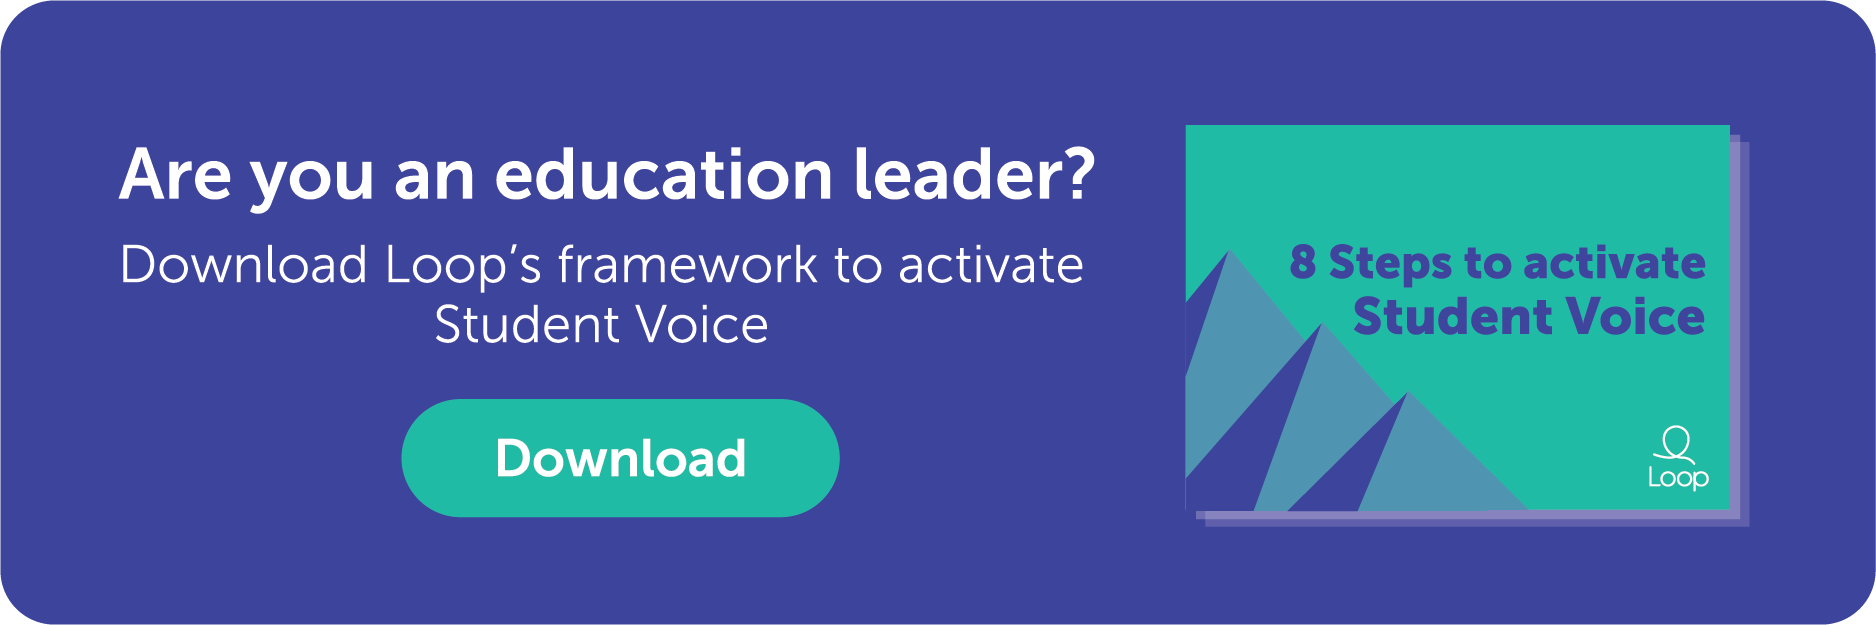 Download Loop's framework to activate Student Voice